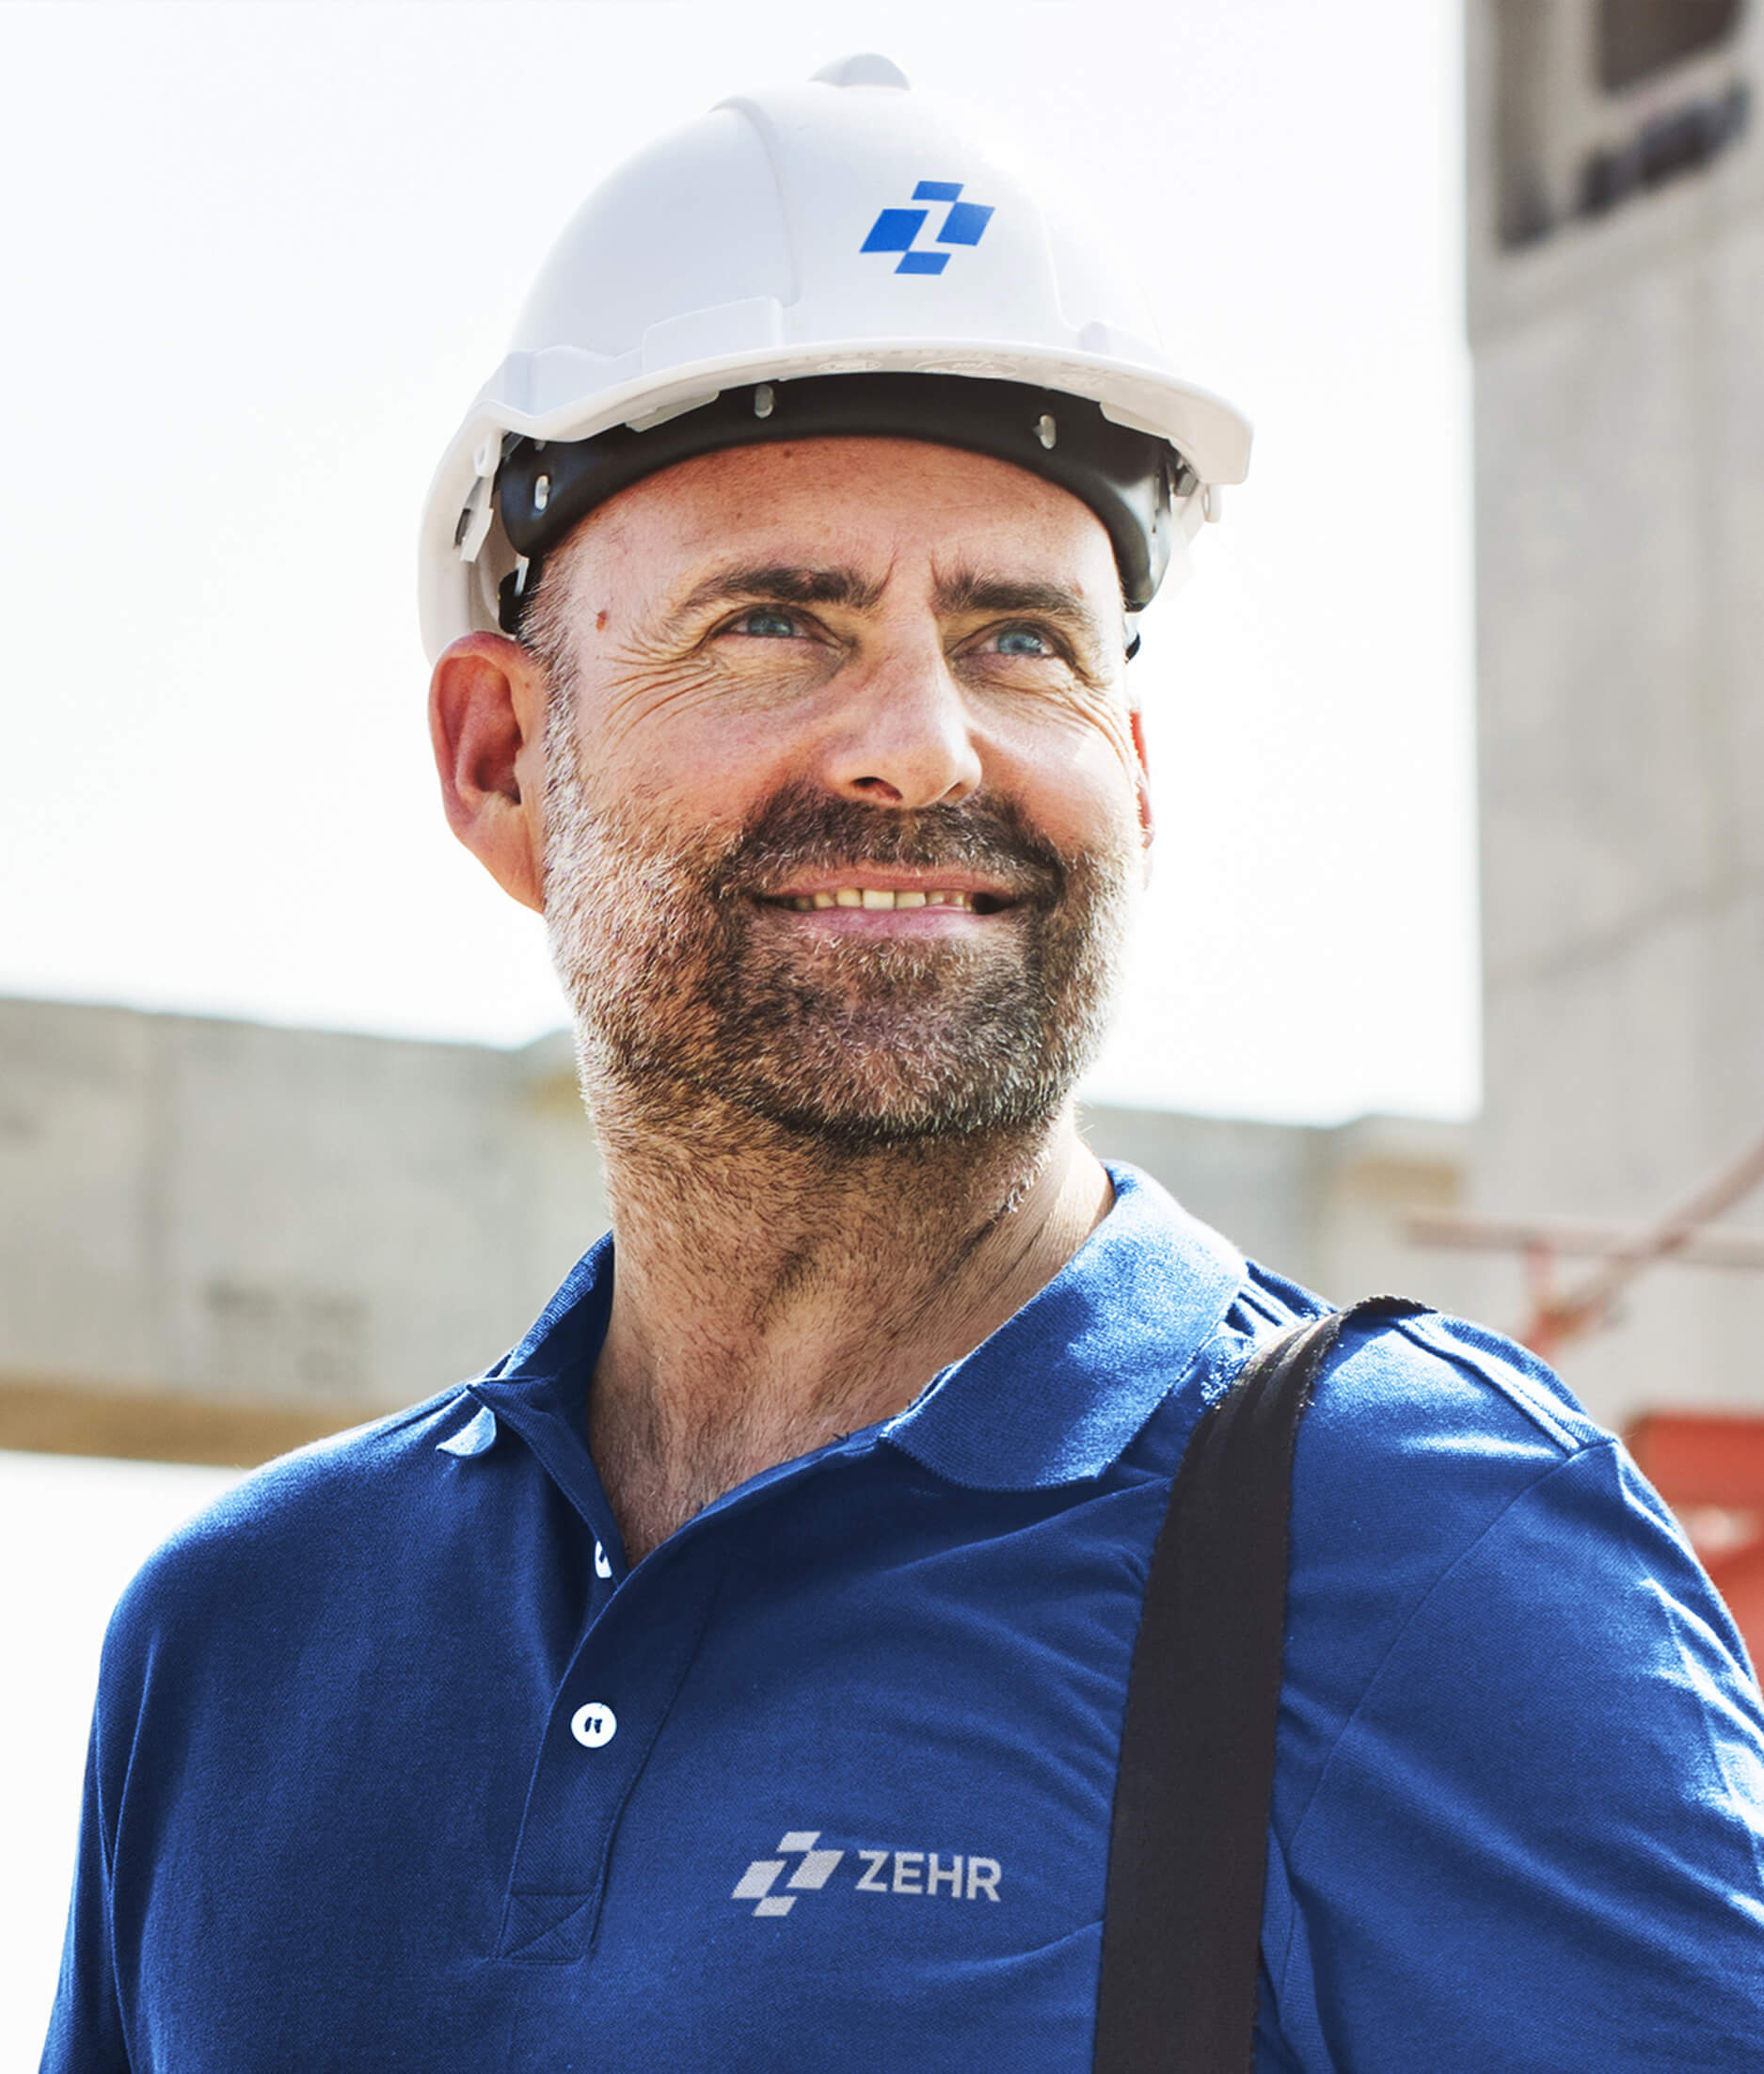 Zehr logo on a hardhat and uniform